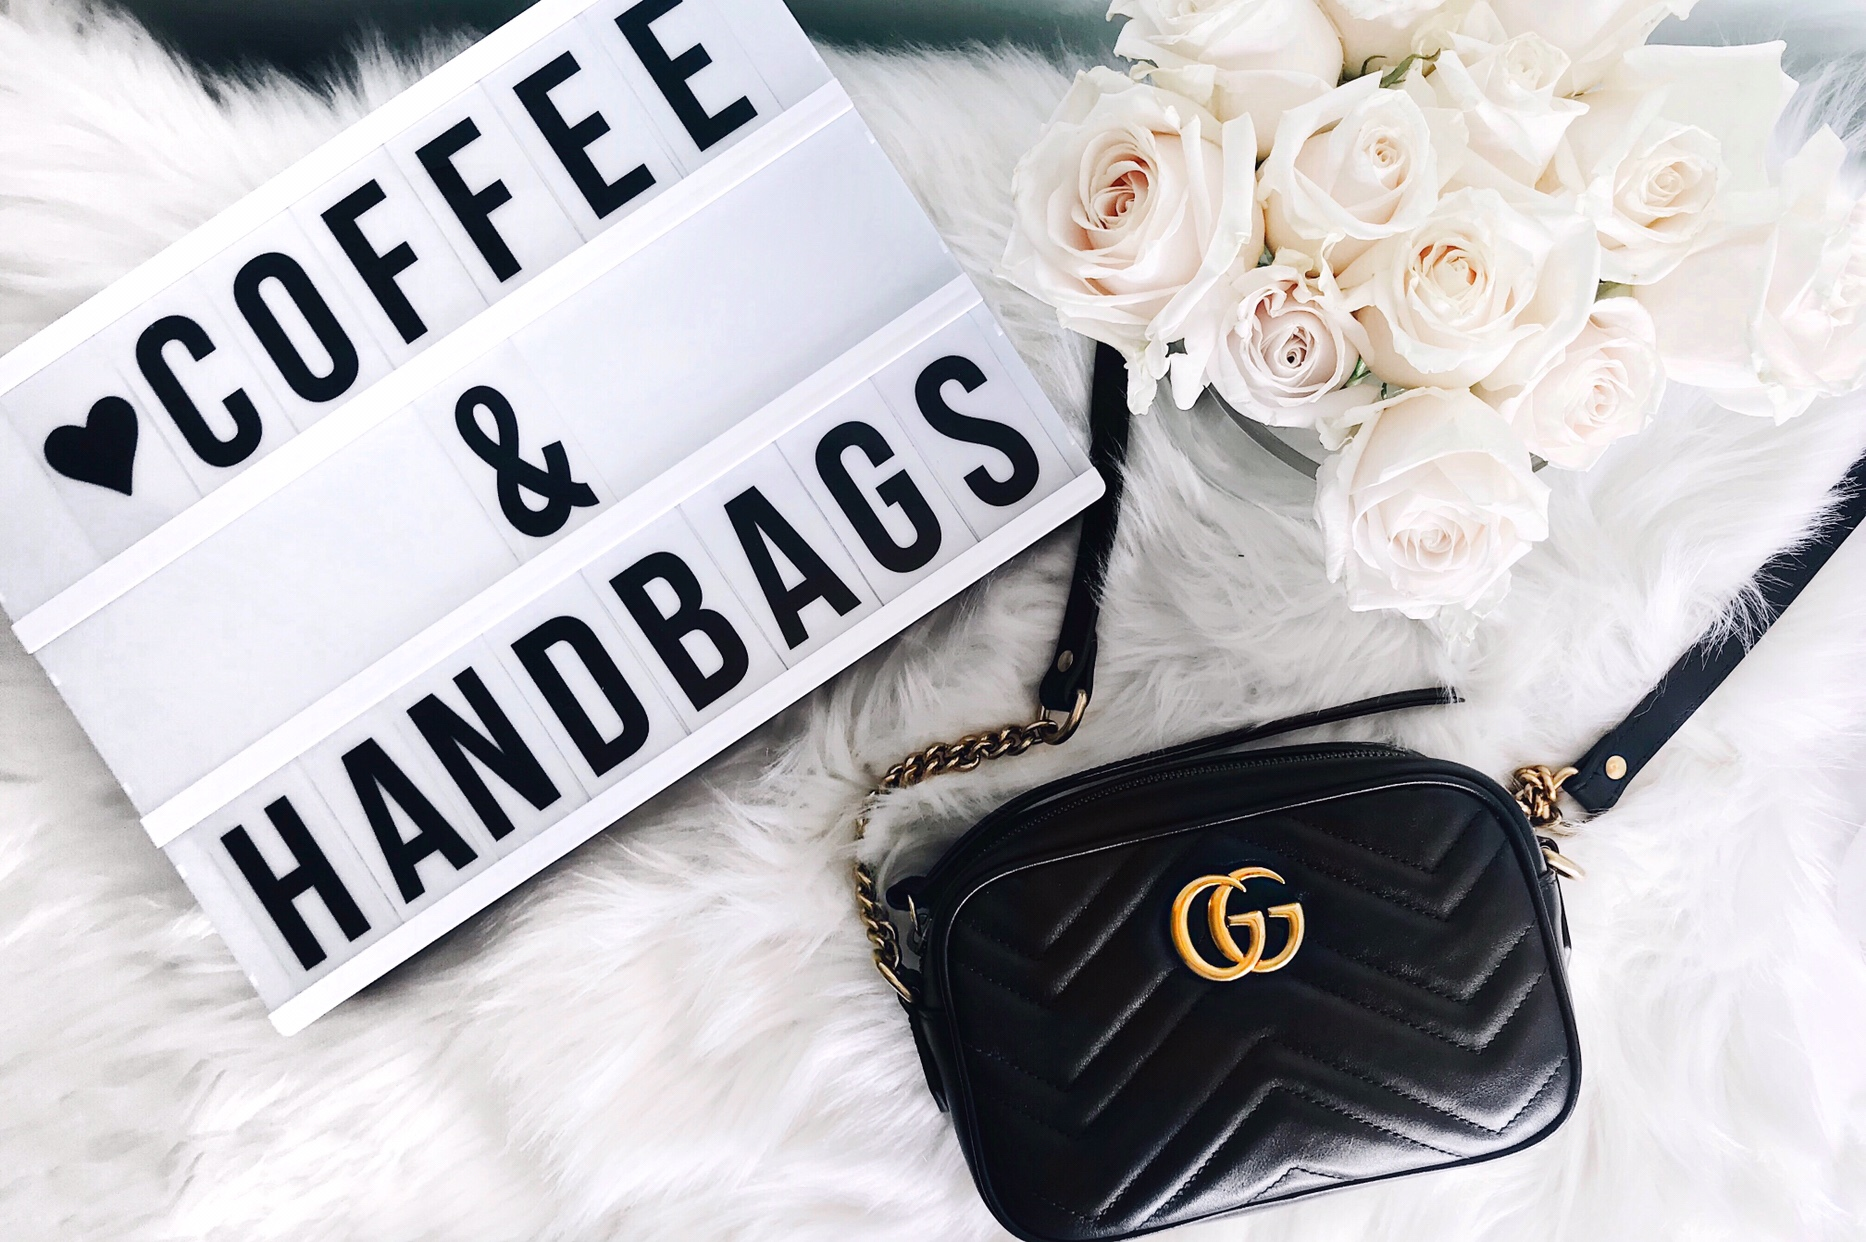 Gucci Marmont Mini Camera Bag Review | CoffeeAndHandbags.com